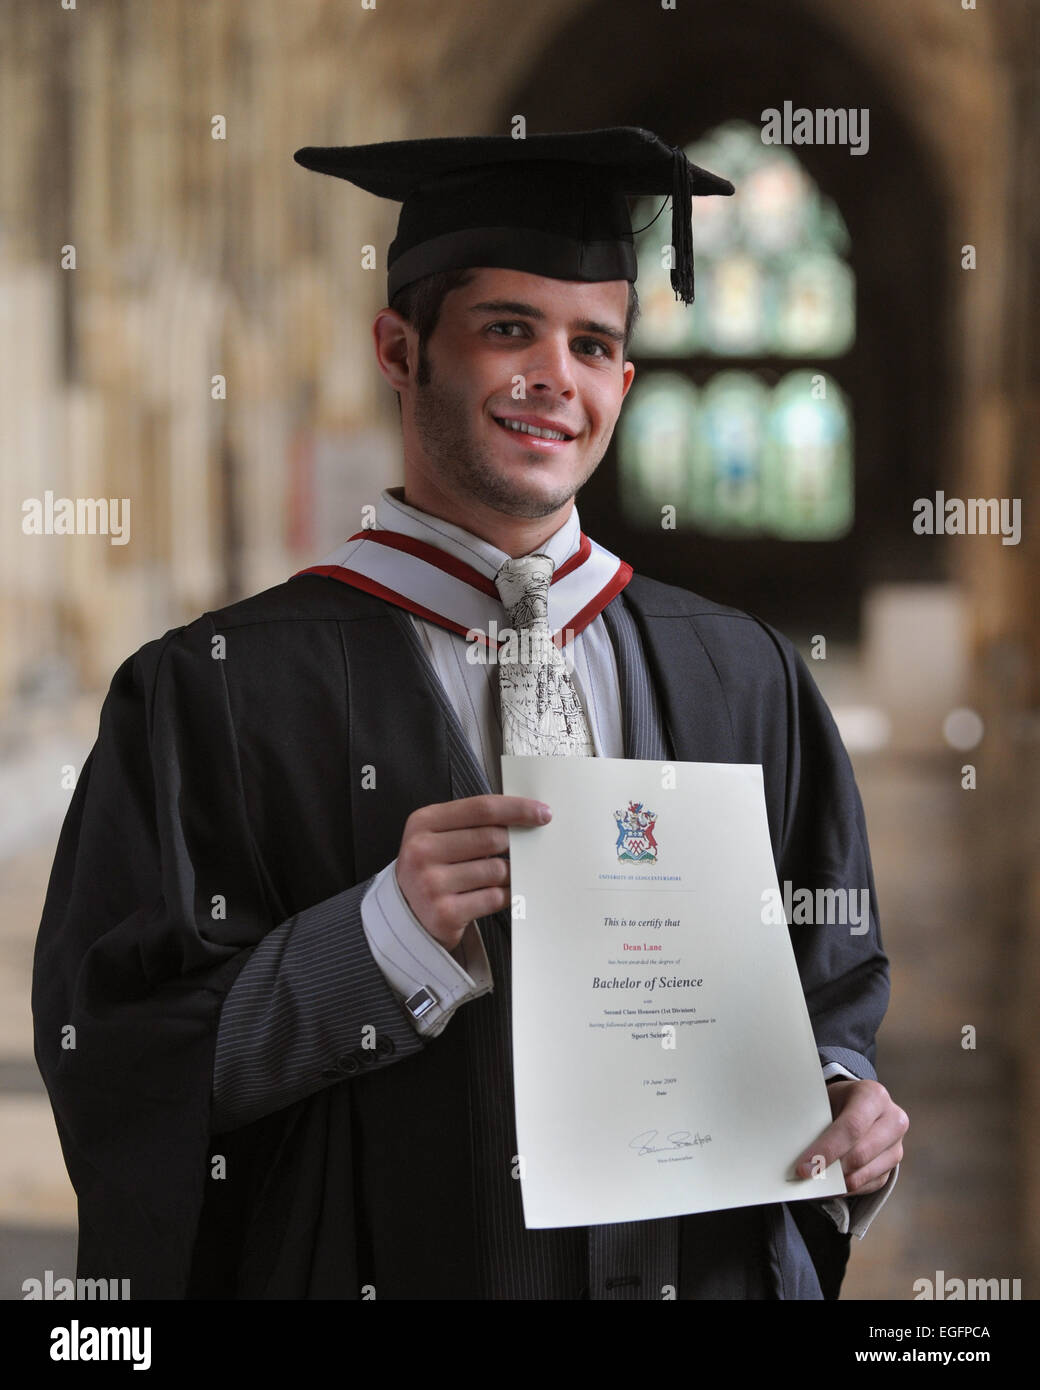 Graduate Student with certificate - Stock Image